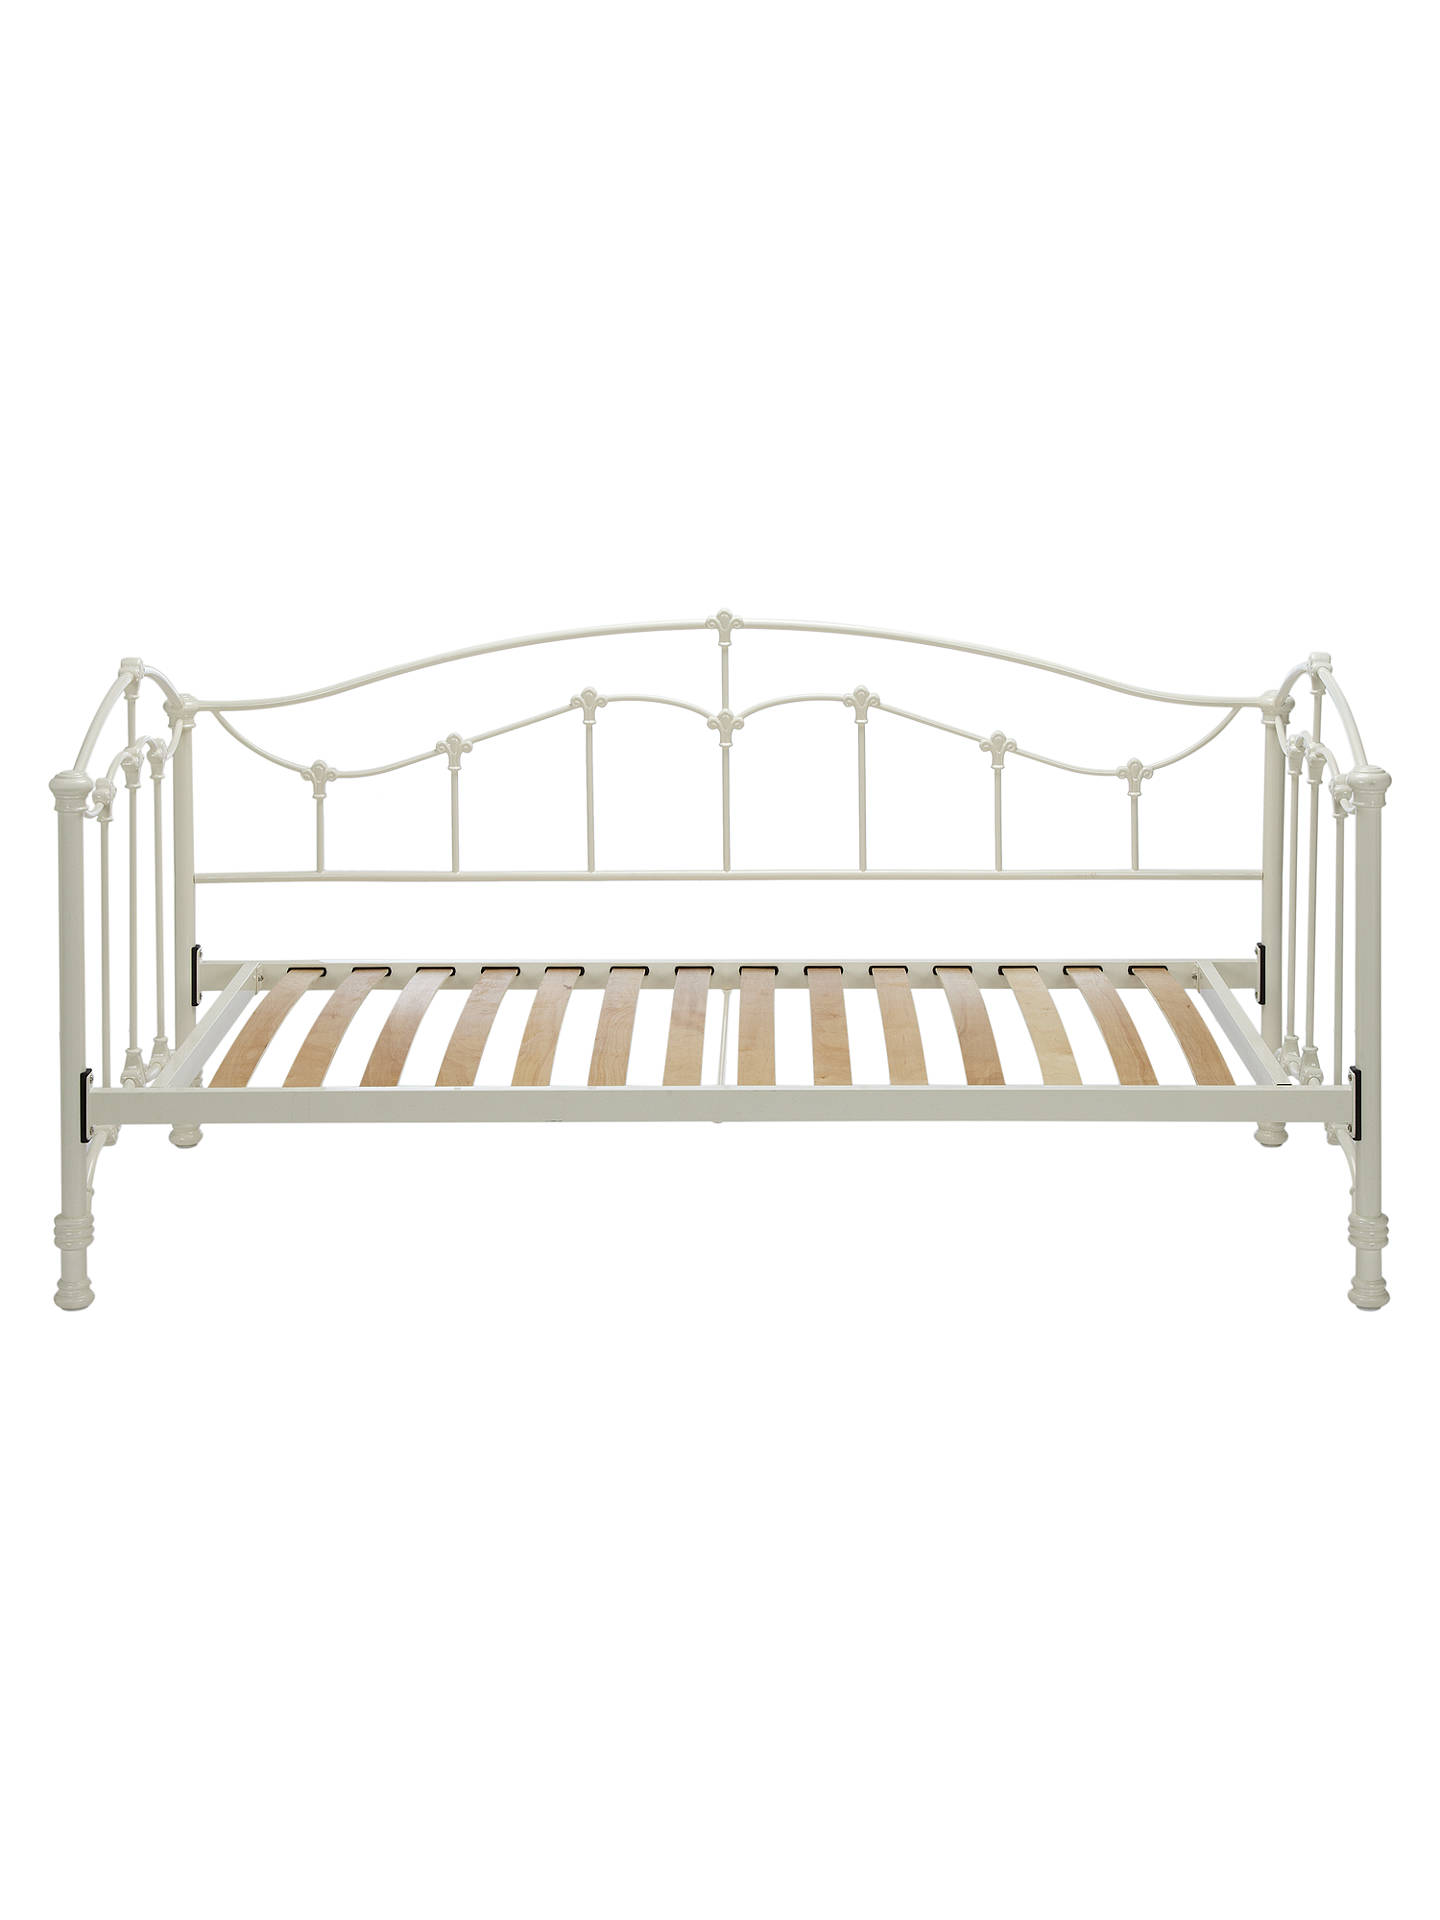 john lewis daisy day bed frame single cream at john. Black Bedroom Furniture Sets. Home Design Ideas